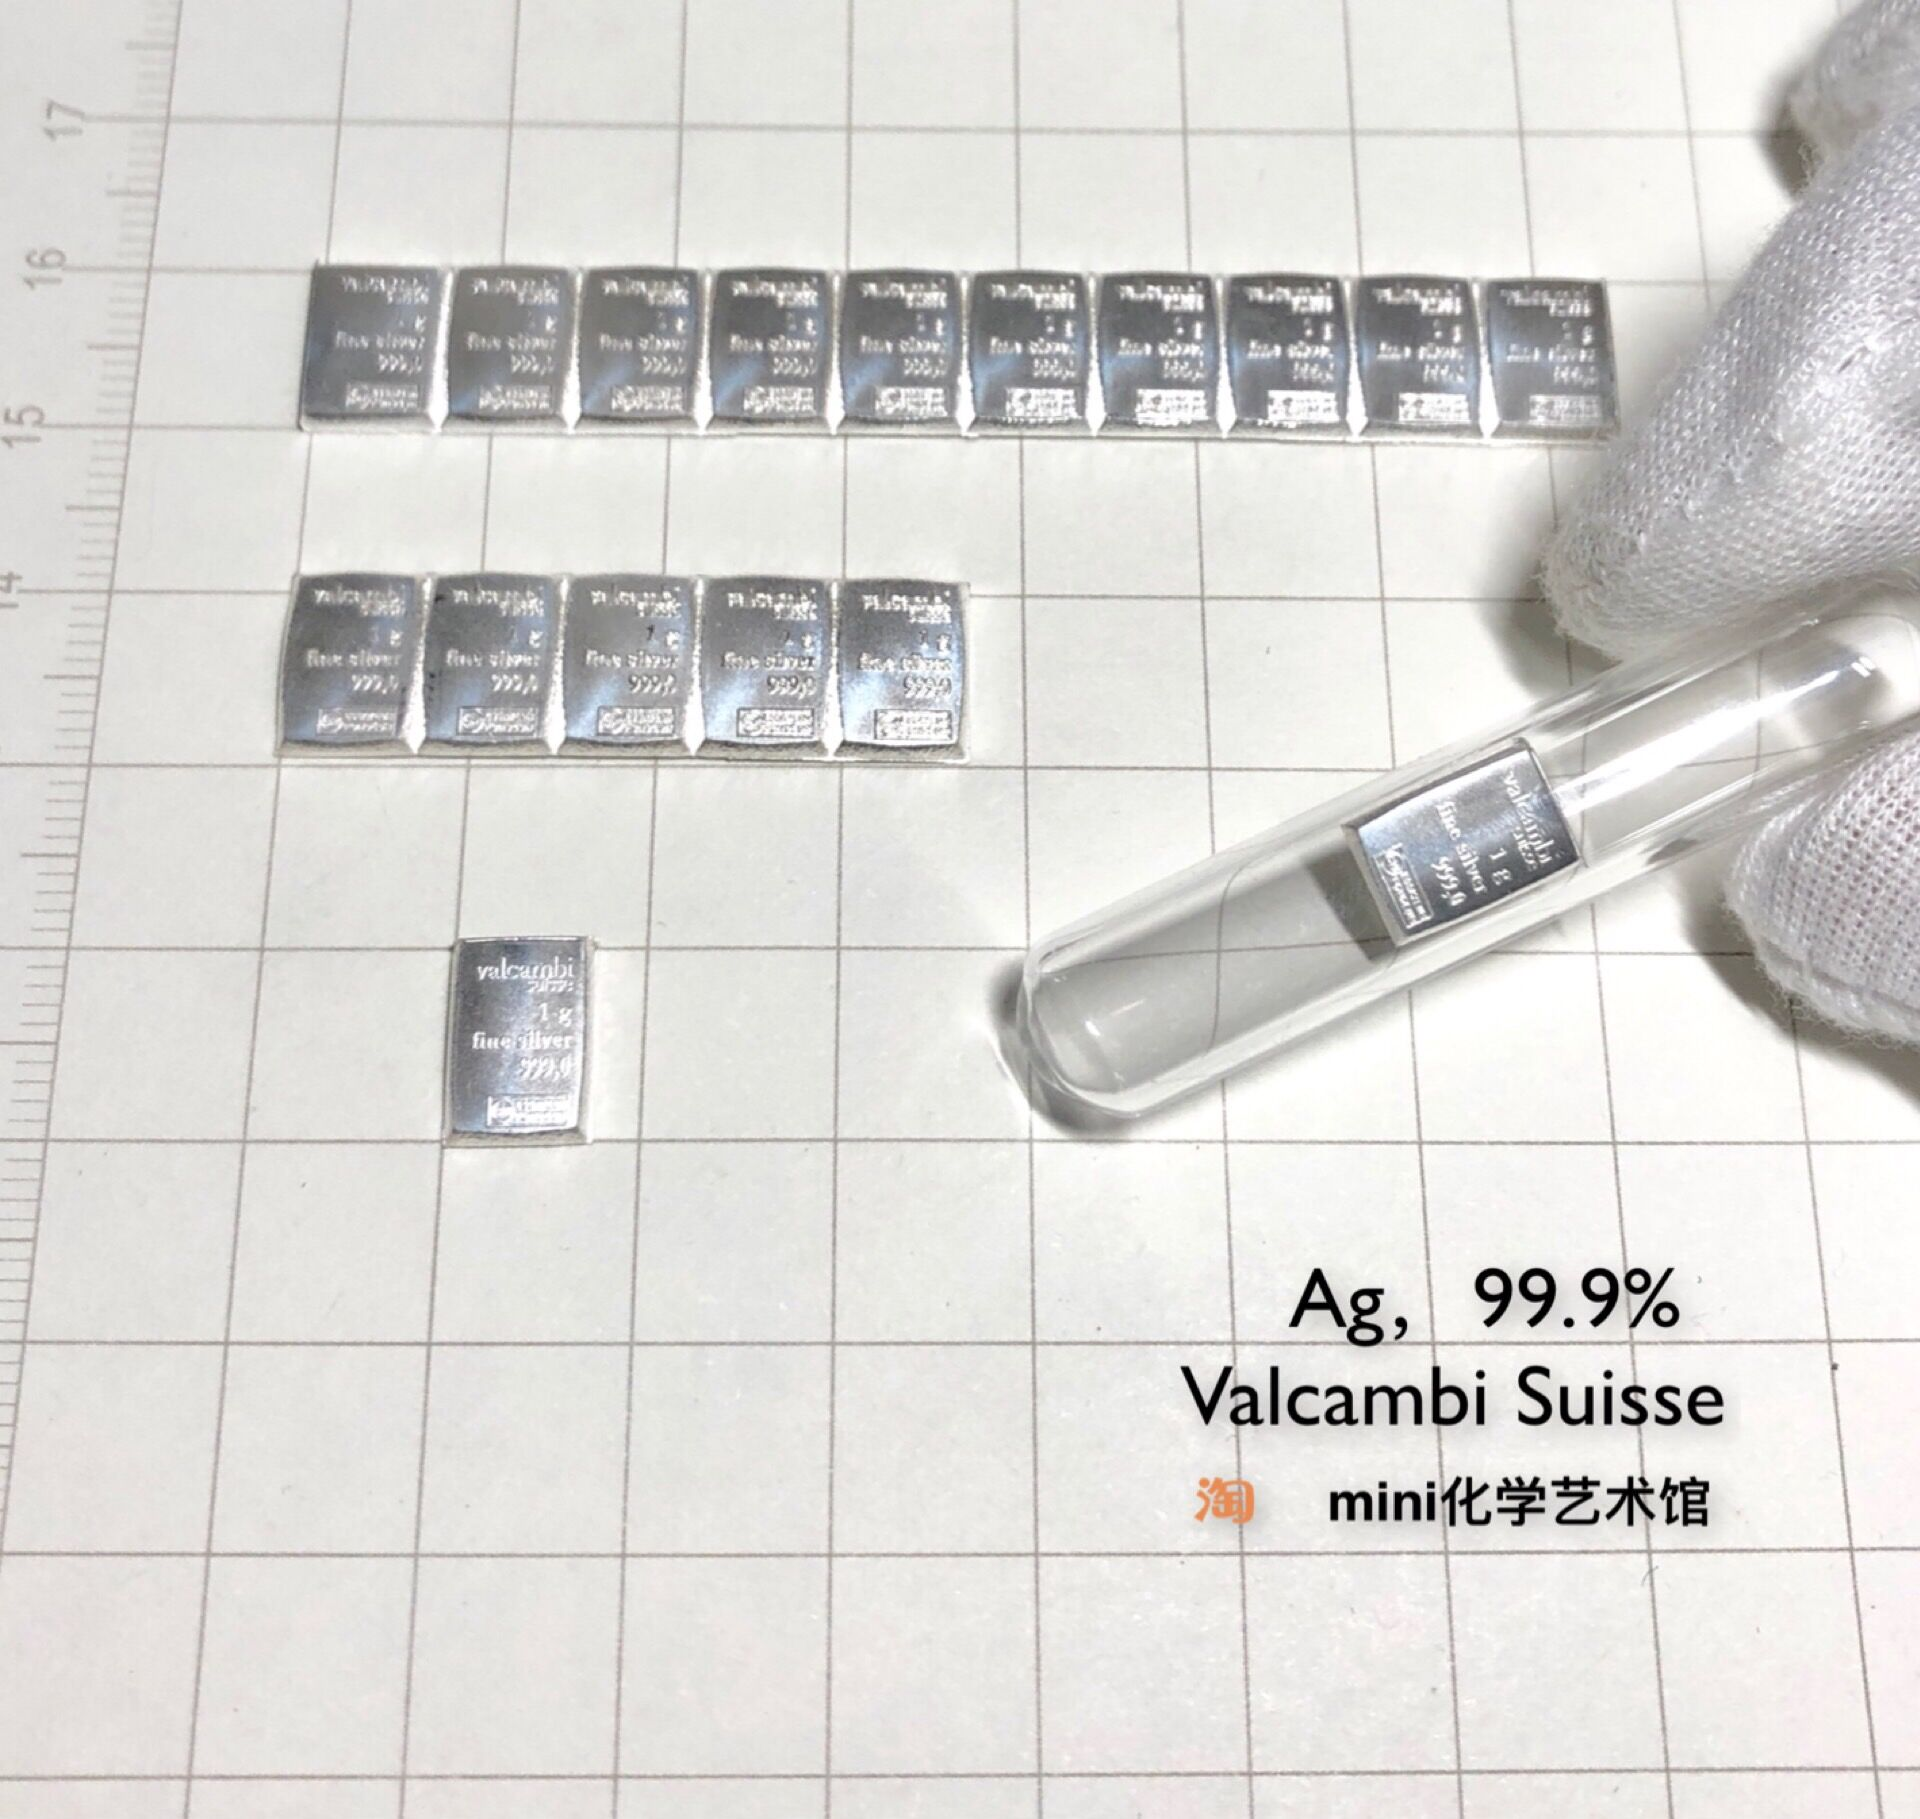 Swiss Valcambi Suisse System Ultra-fine Investment Silver Bar 1g Silver Bar Ag 99.9%